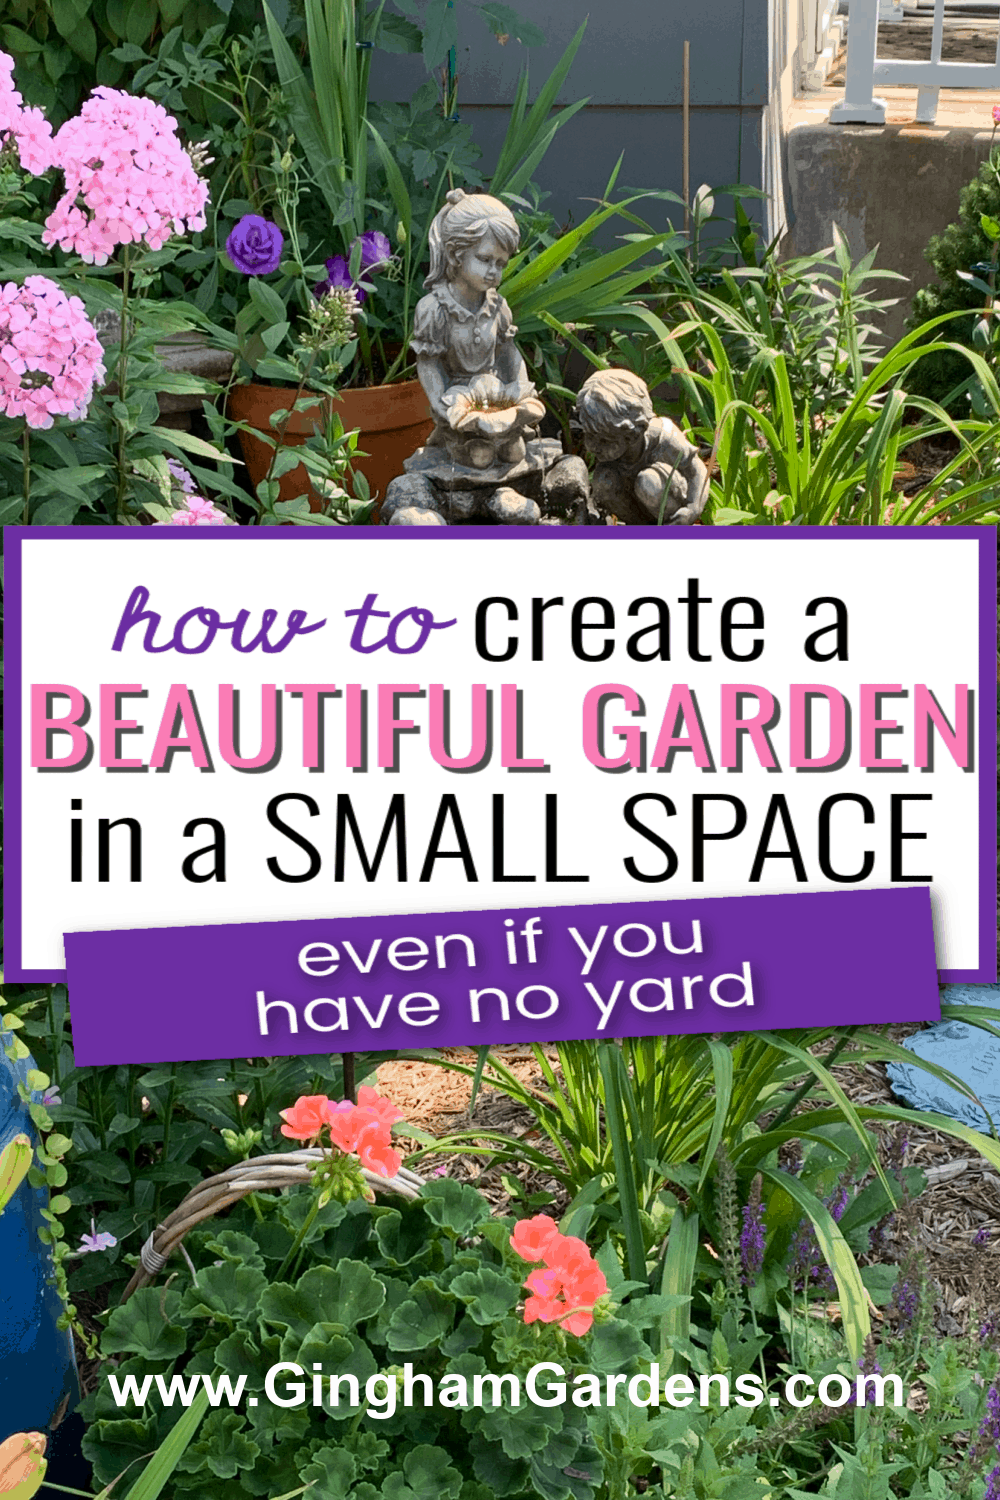 Image of a flower garden with text overlay - How to Create a Beautiful Garden in a Small Space